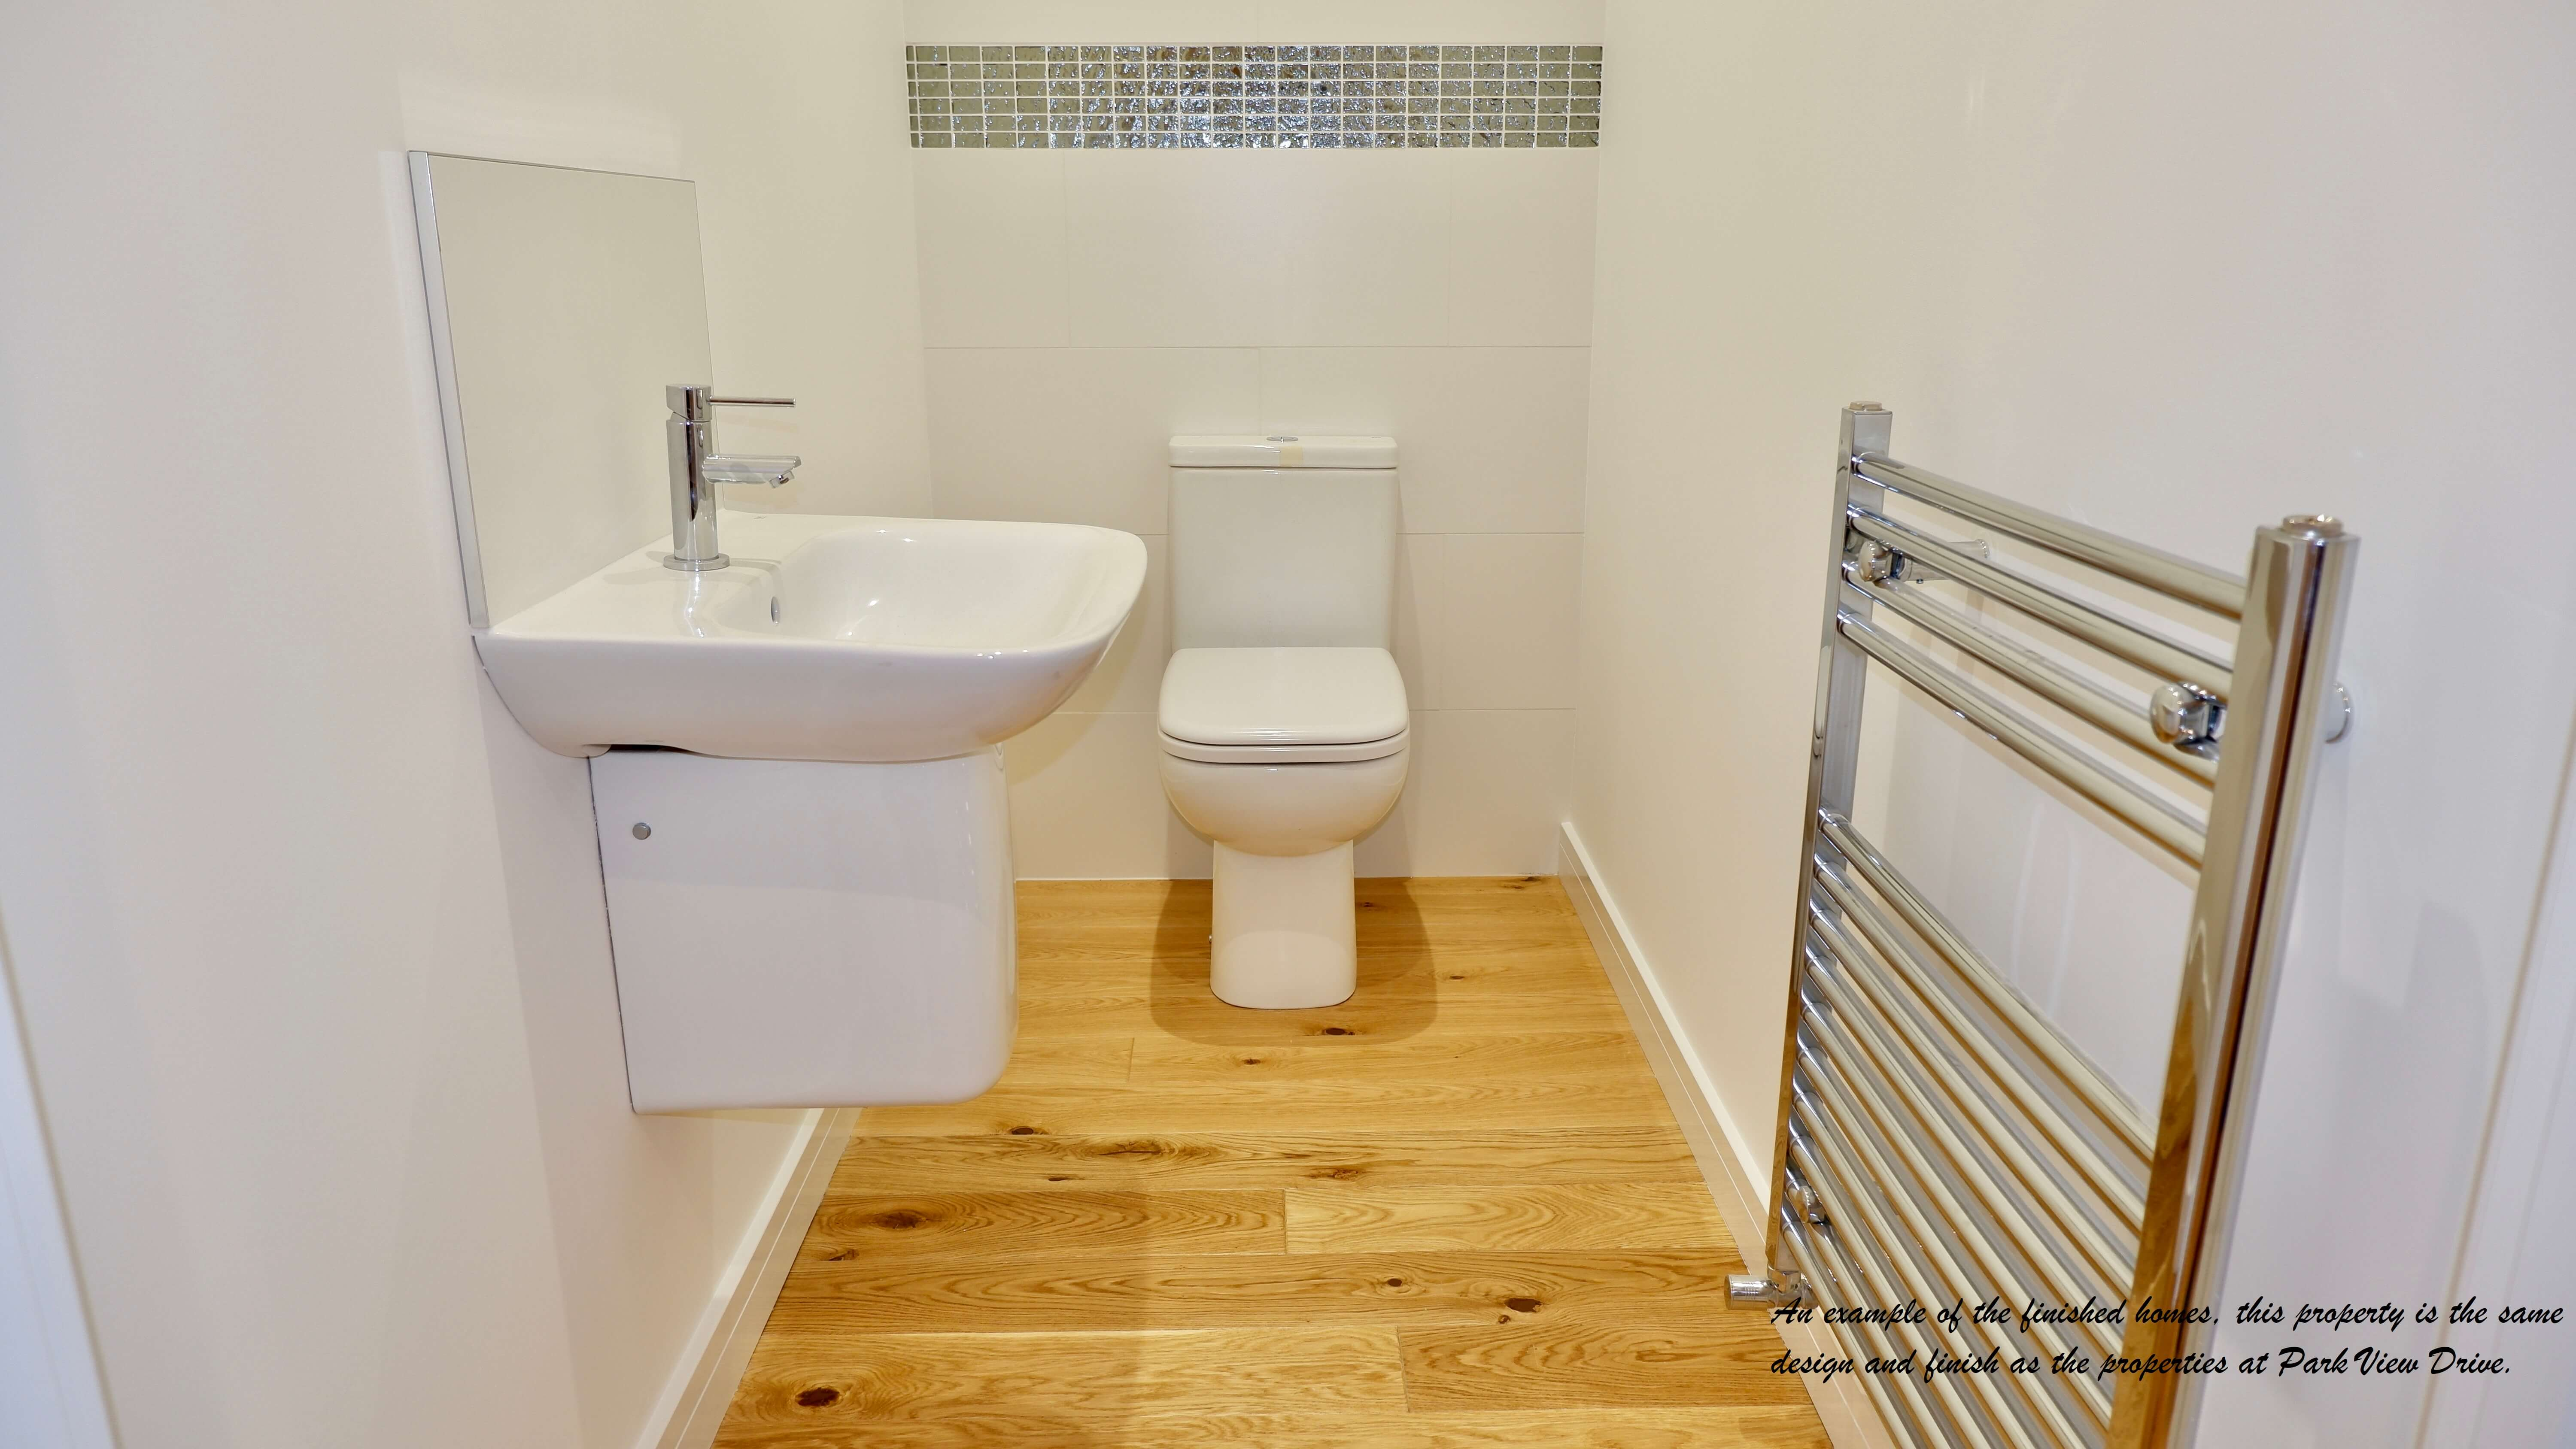 Cloakroom, KIDWELLY, CARMARTHENSHIRE